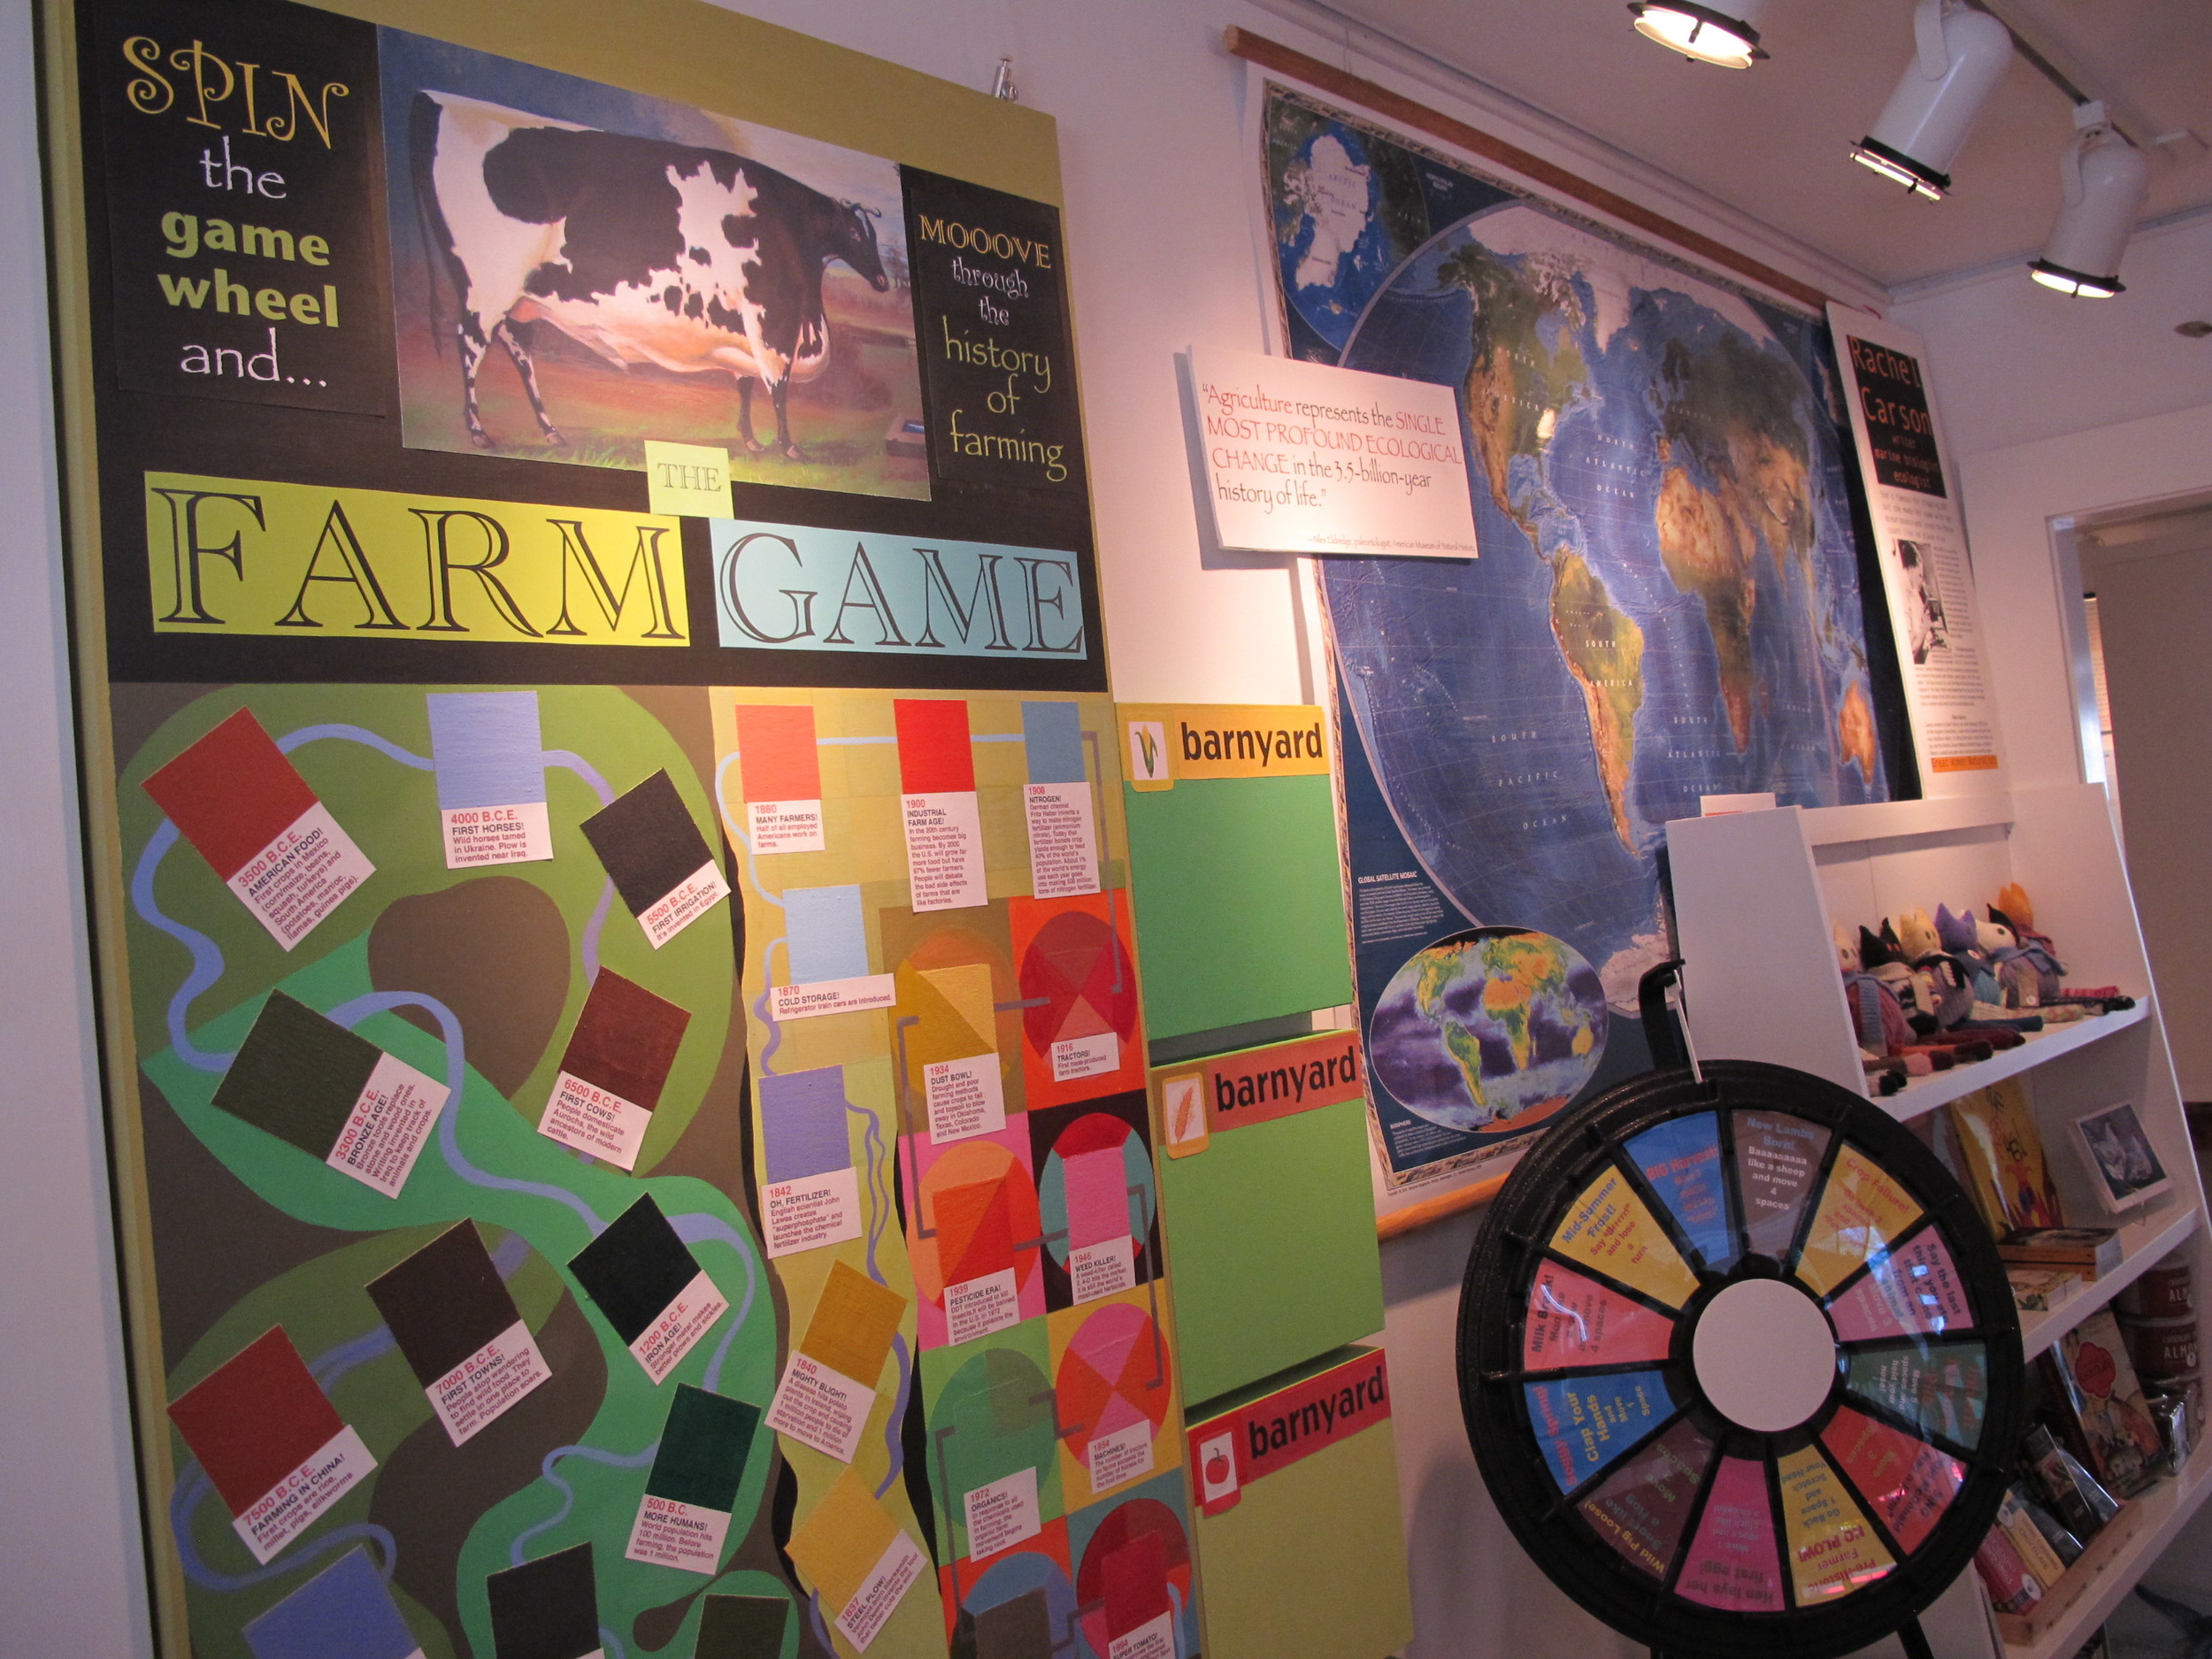 Spin the wheel and take your chances as you maneuver through our oversized, homemade board game. If you've ever golfed with your sheep, you get an extra wheel spin.